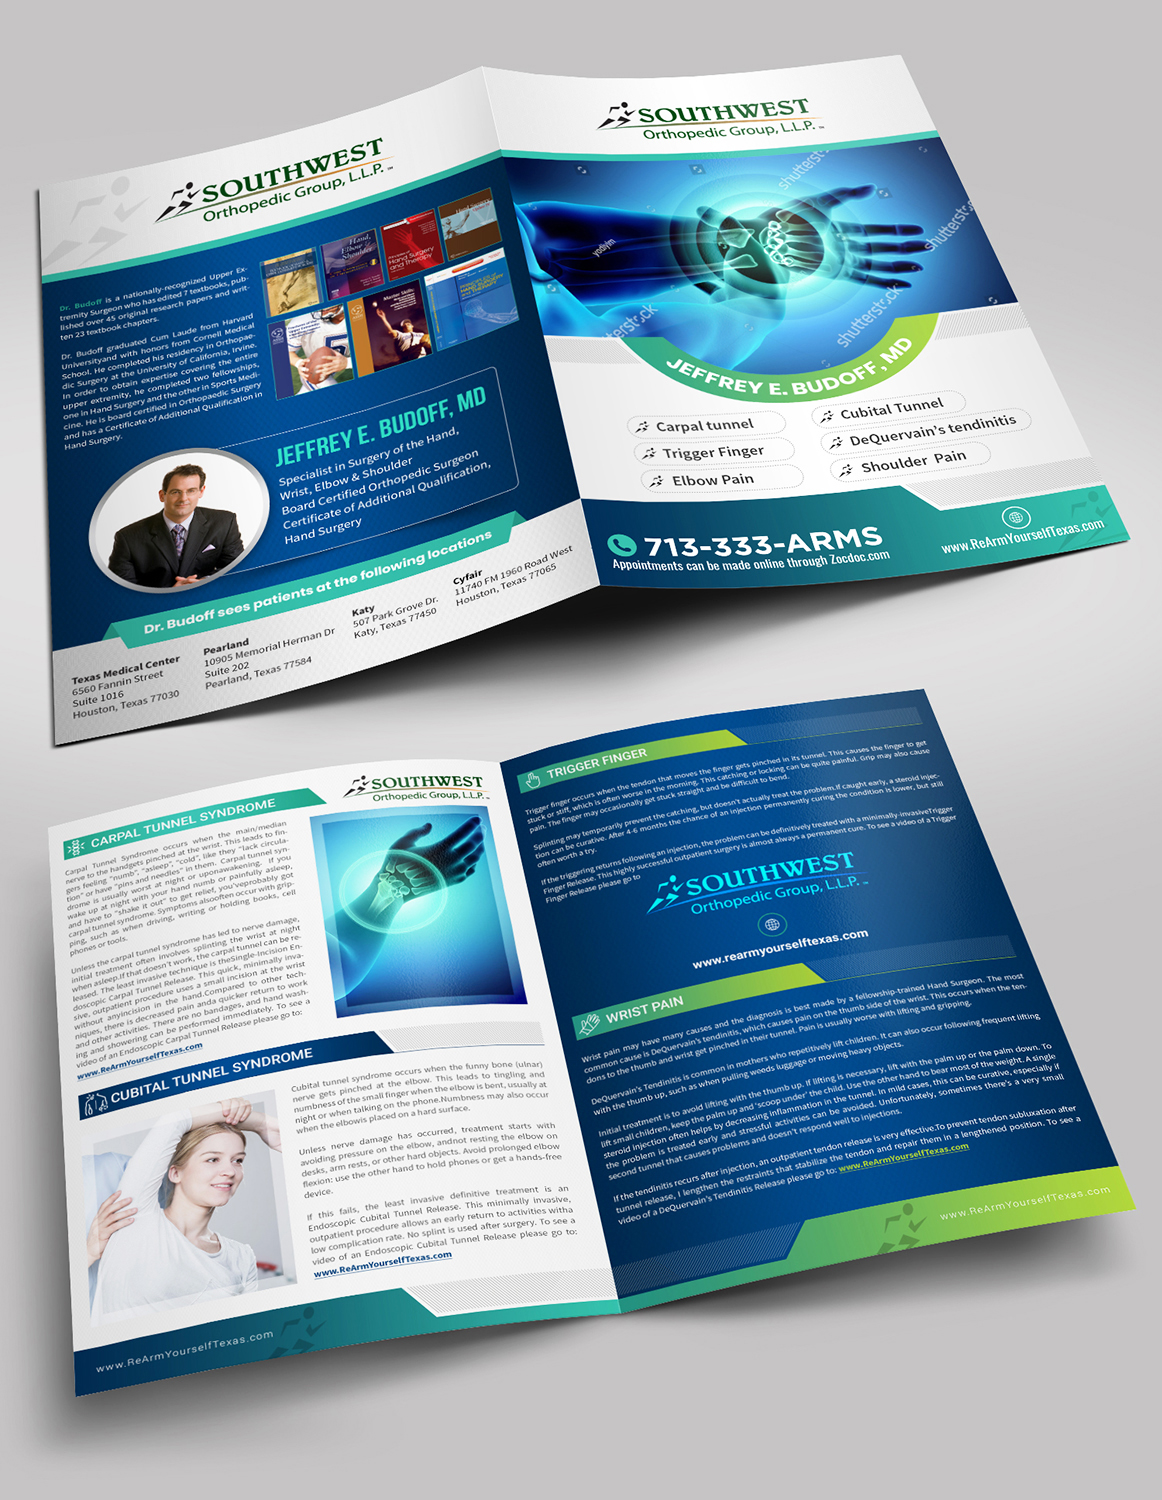 Professional, Serious Flyer Design for a Company by SD